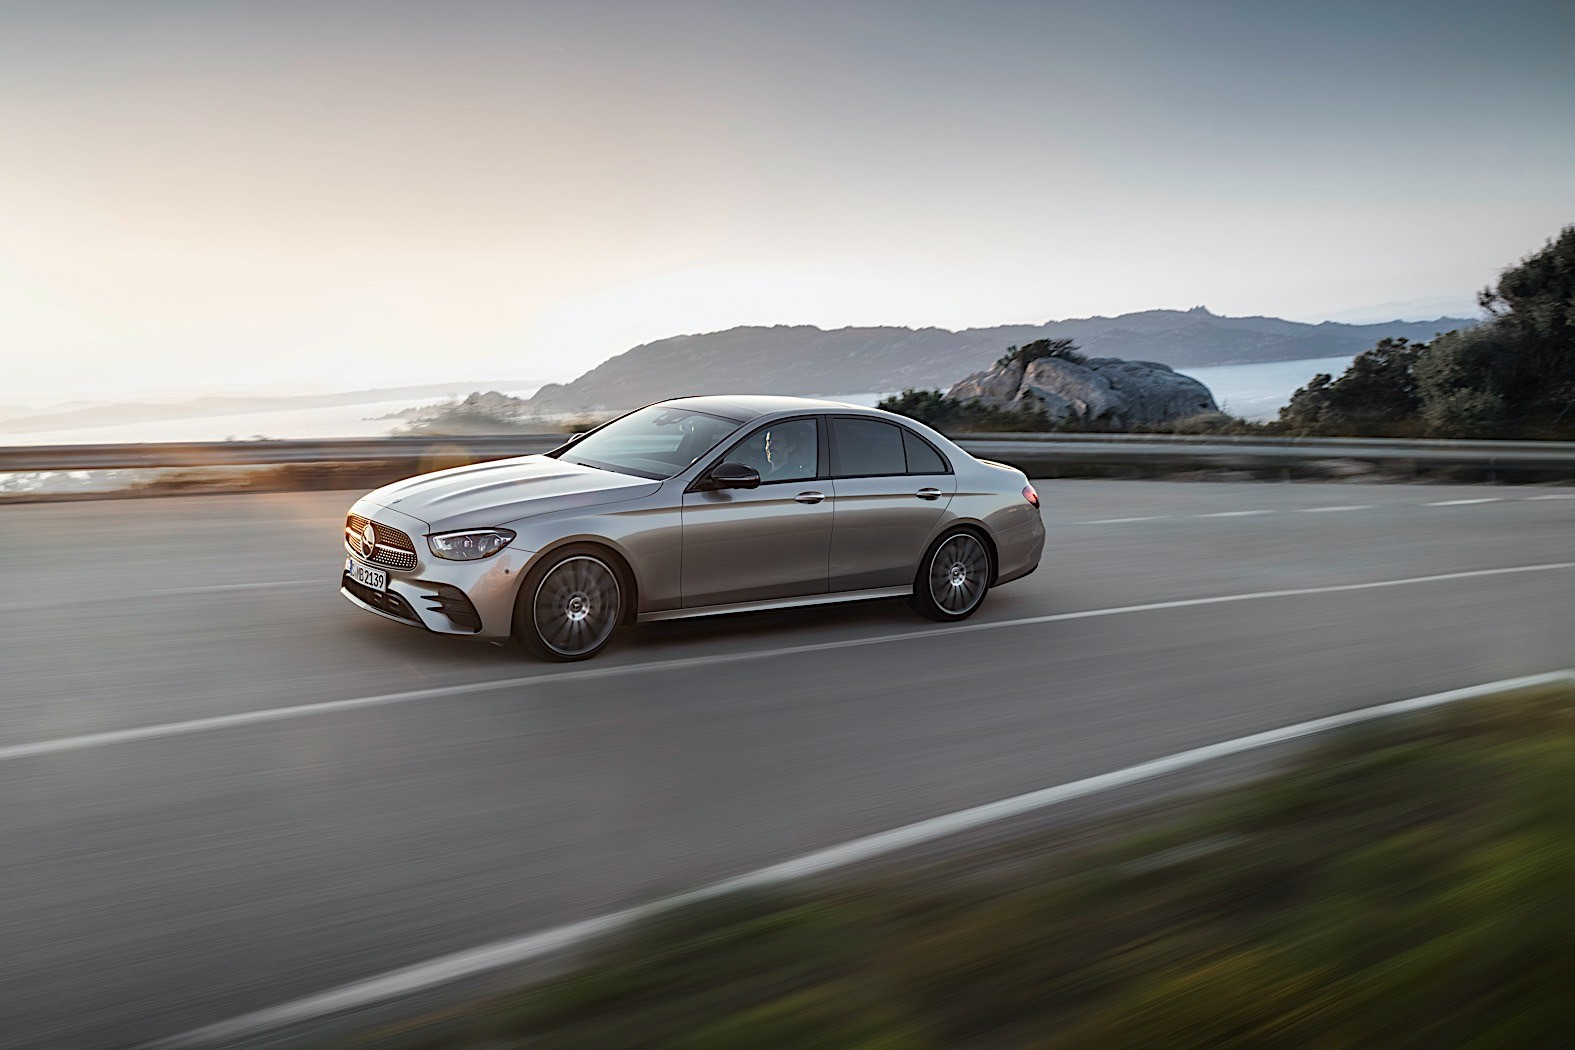 2021 mercedesbenz eclass review  autoevolution